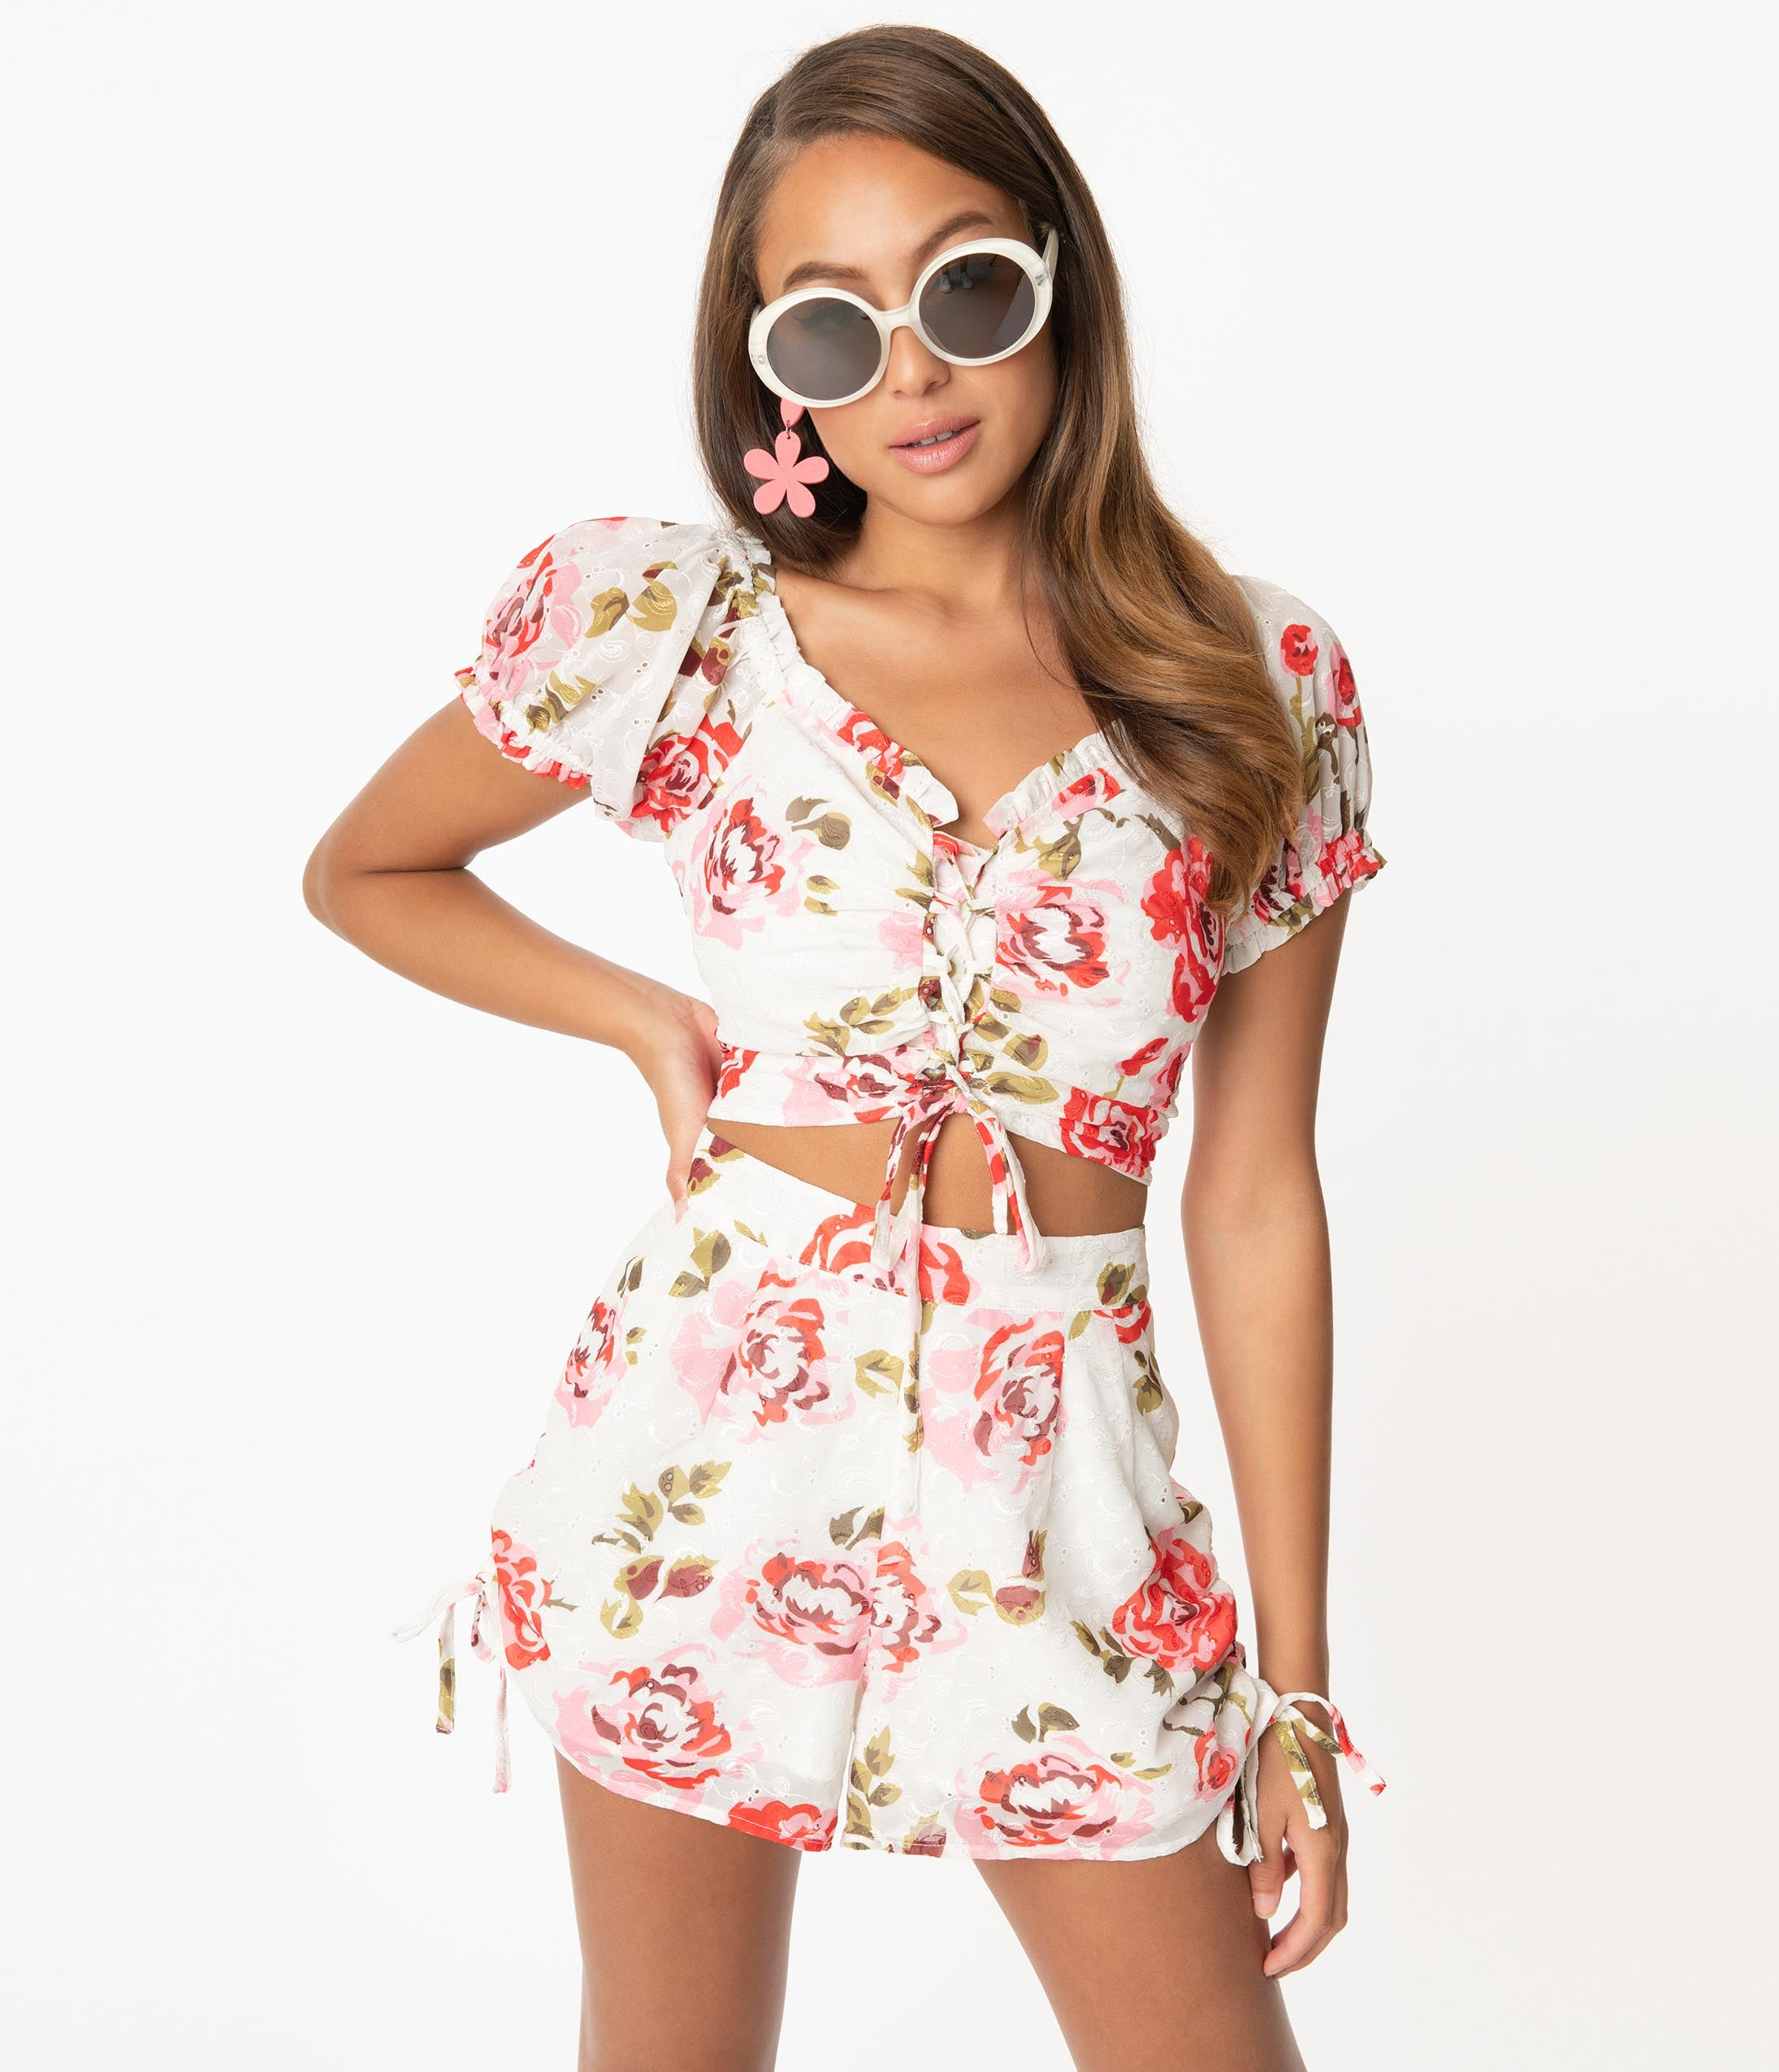 Vintage Rompers, Playsuits   Retro, Pin Up, Rockabilly Playsuits Smak Parlour White  Pink Floral Luncheonette Shorts $52.00 AT vintagedancer.com